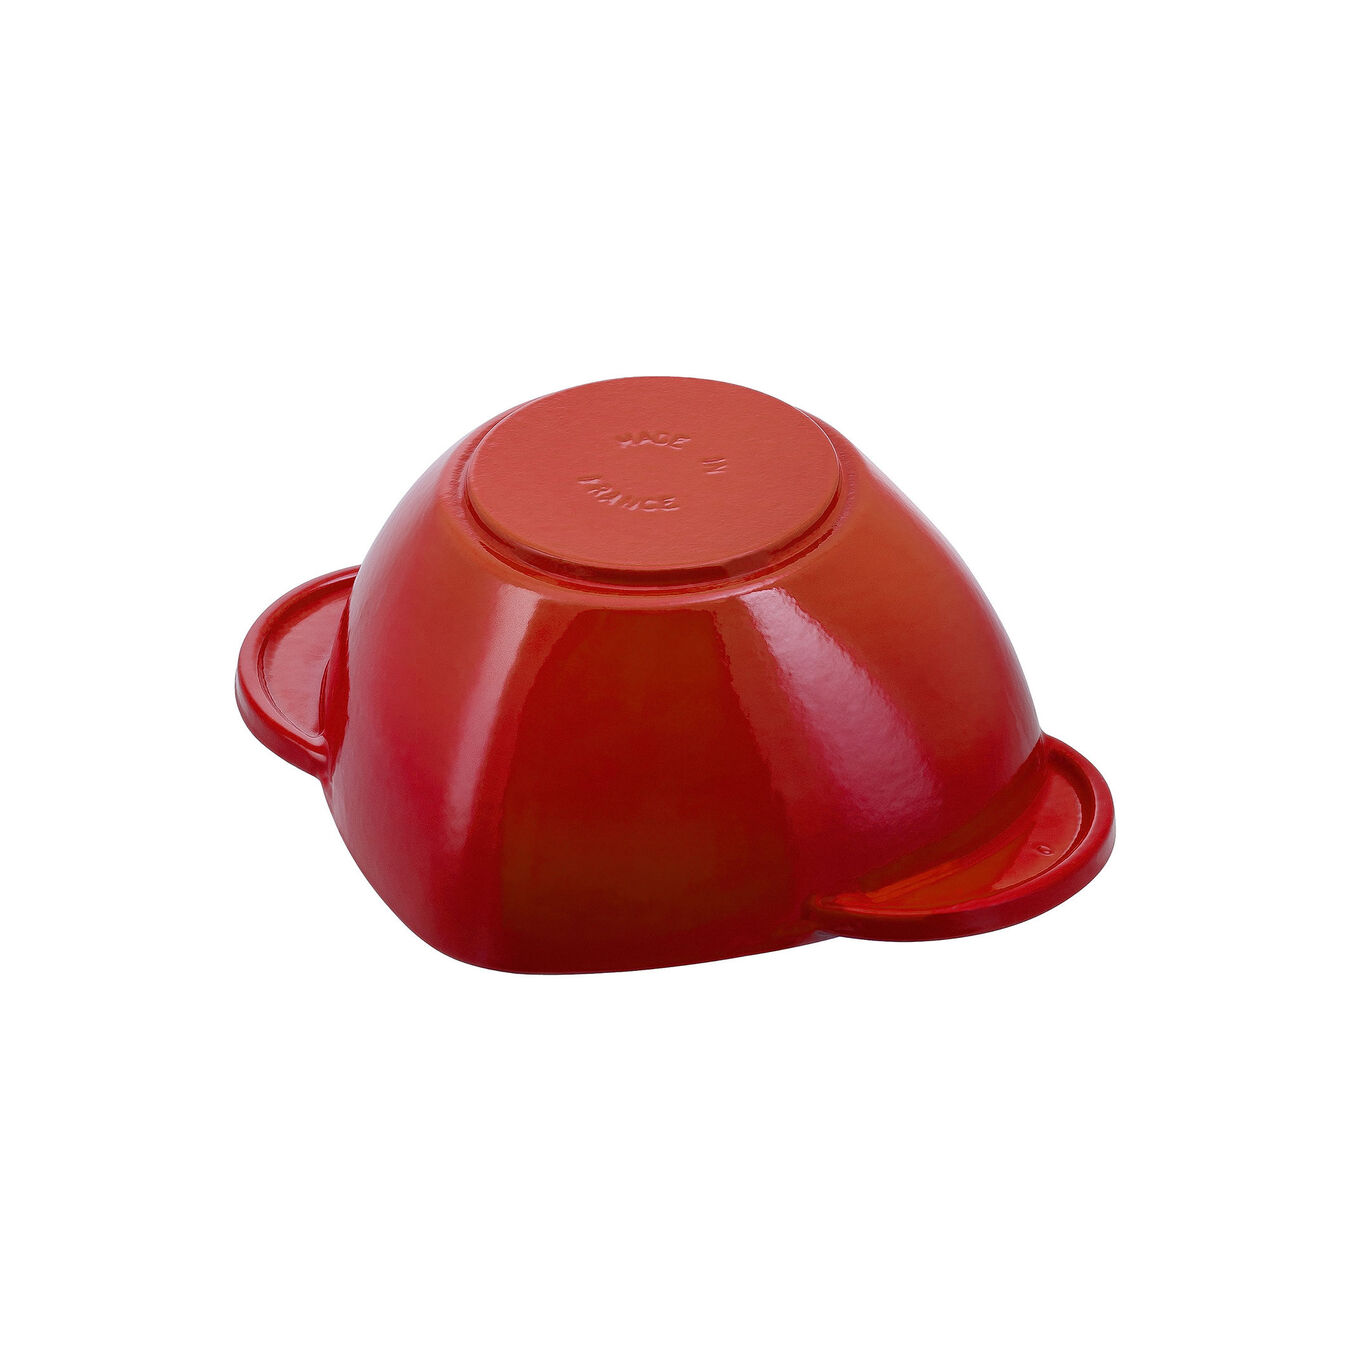 Cocotte 20 cm, Herz, Kirsch-Rot, Gusseisen,,large 4